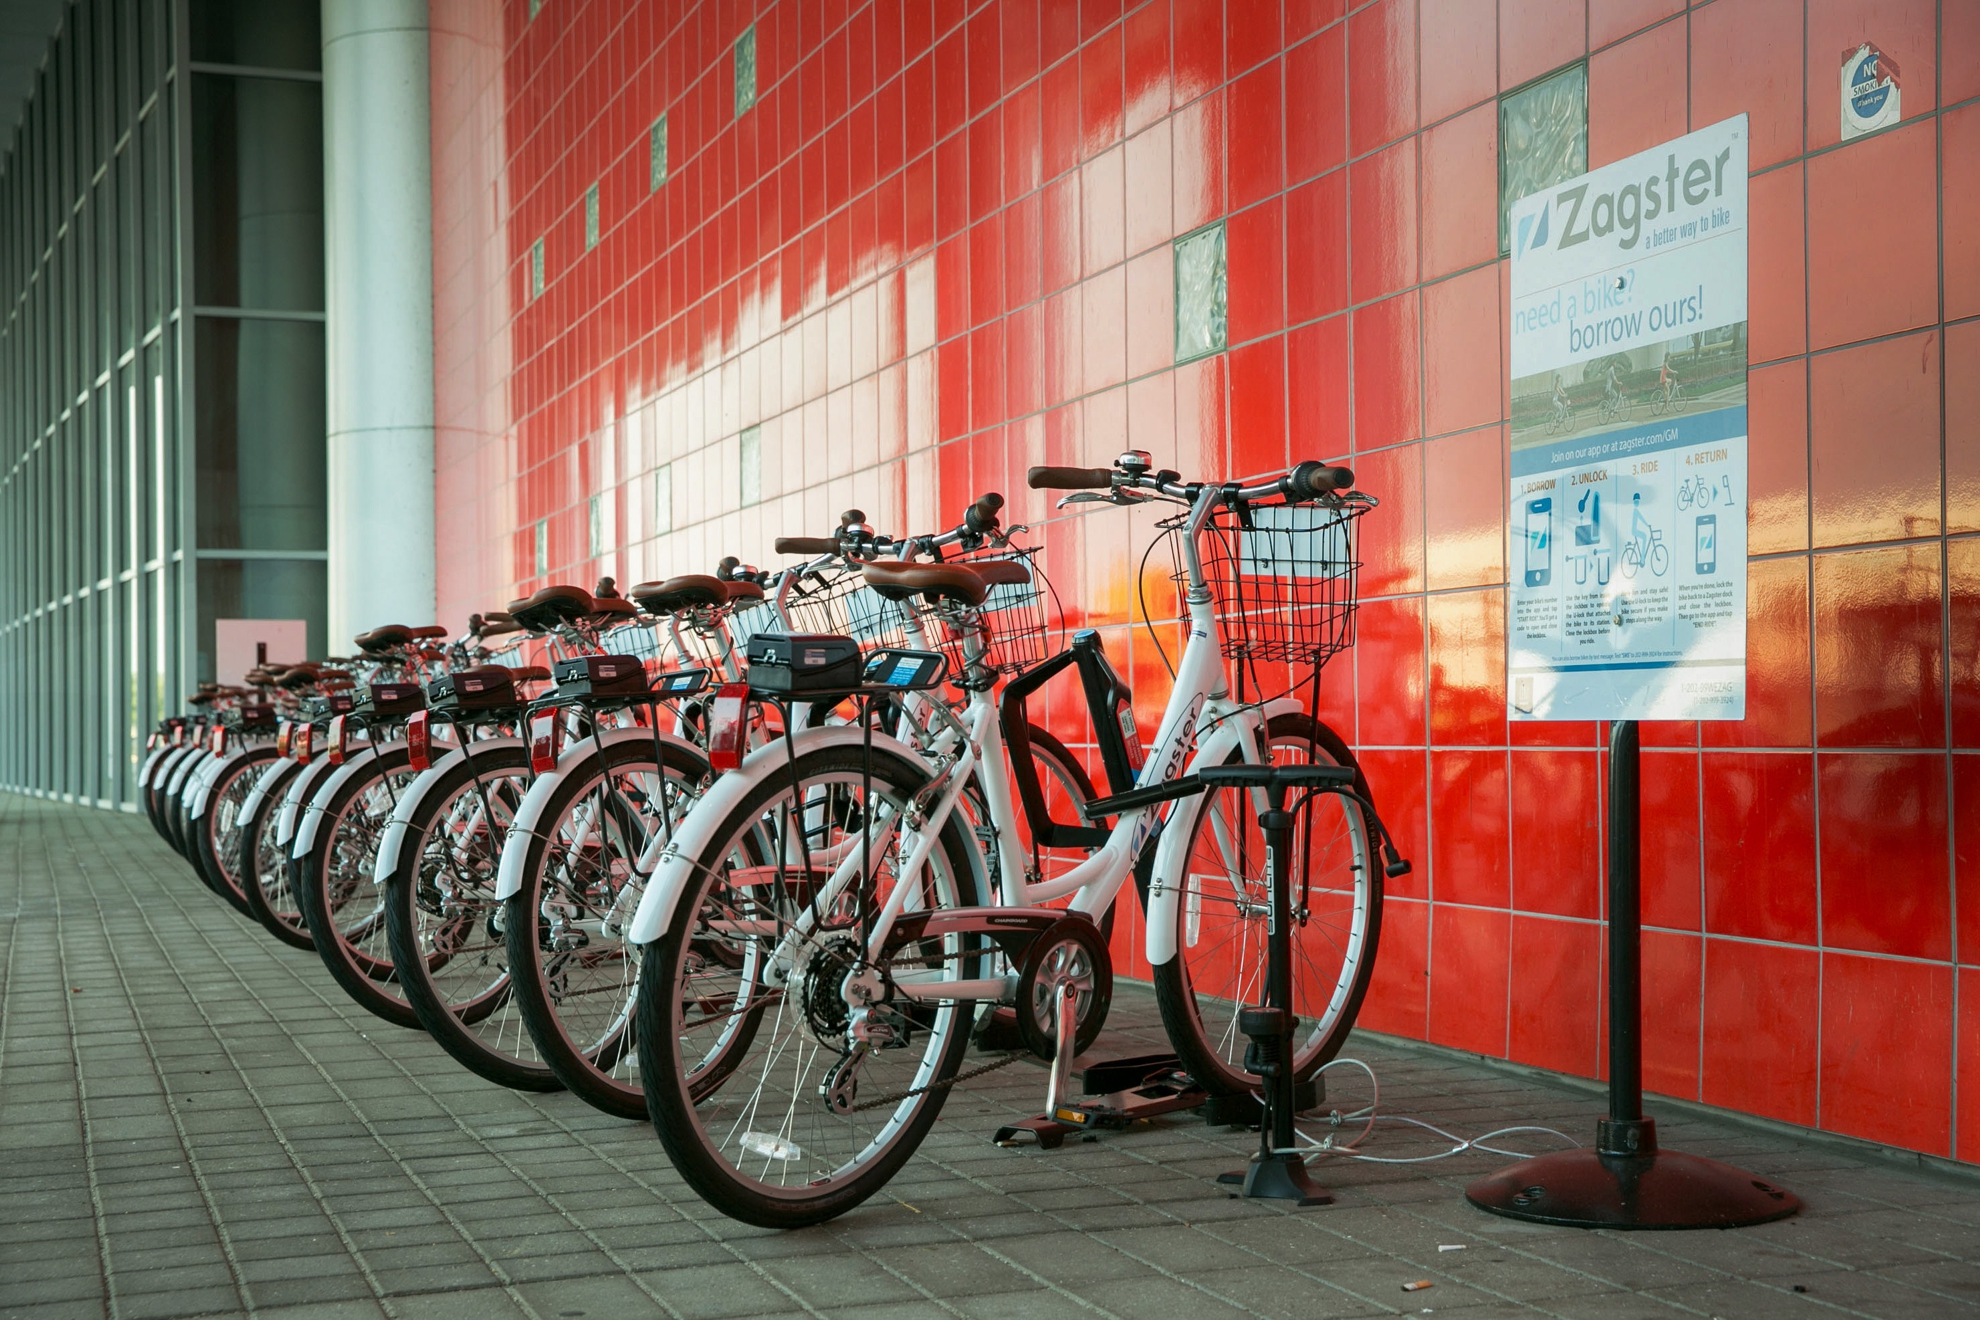 Bicycle-Sharing